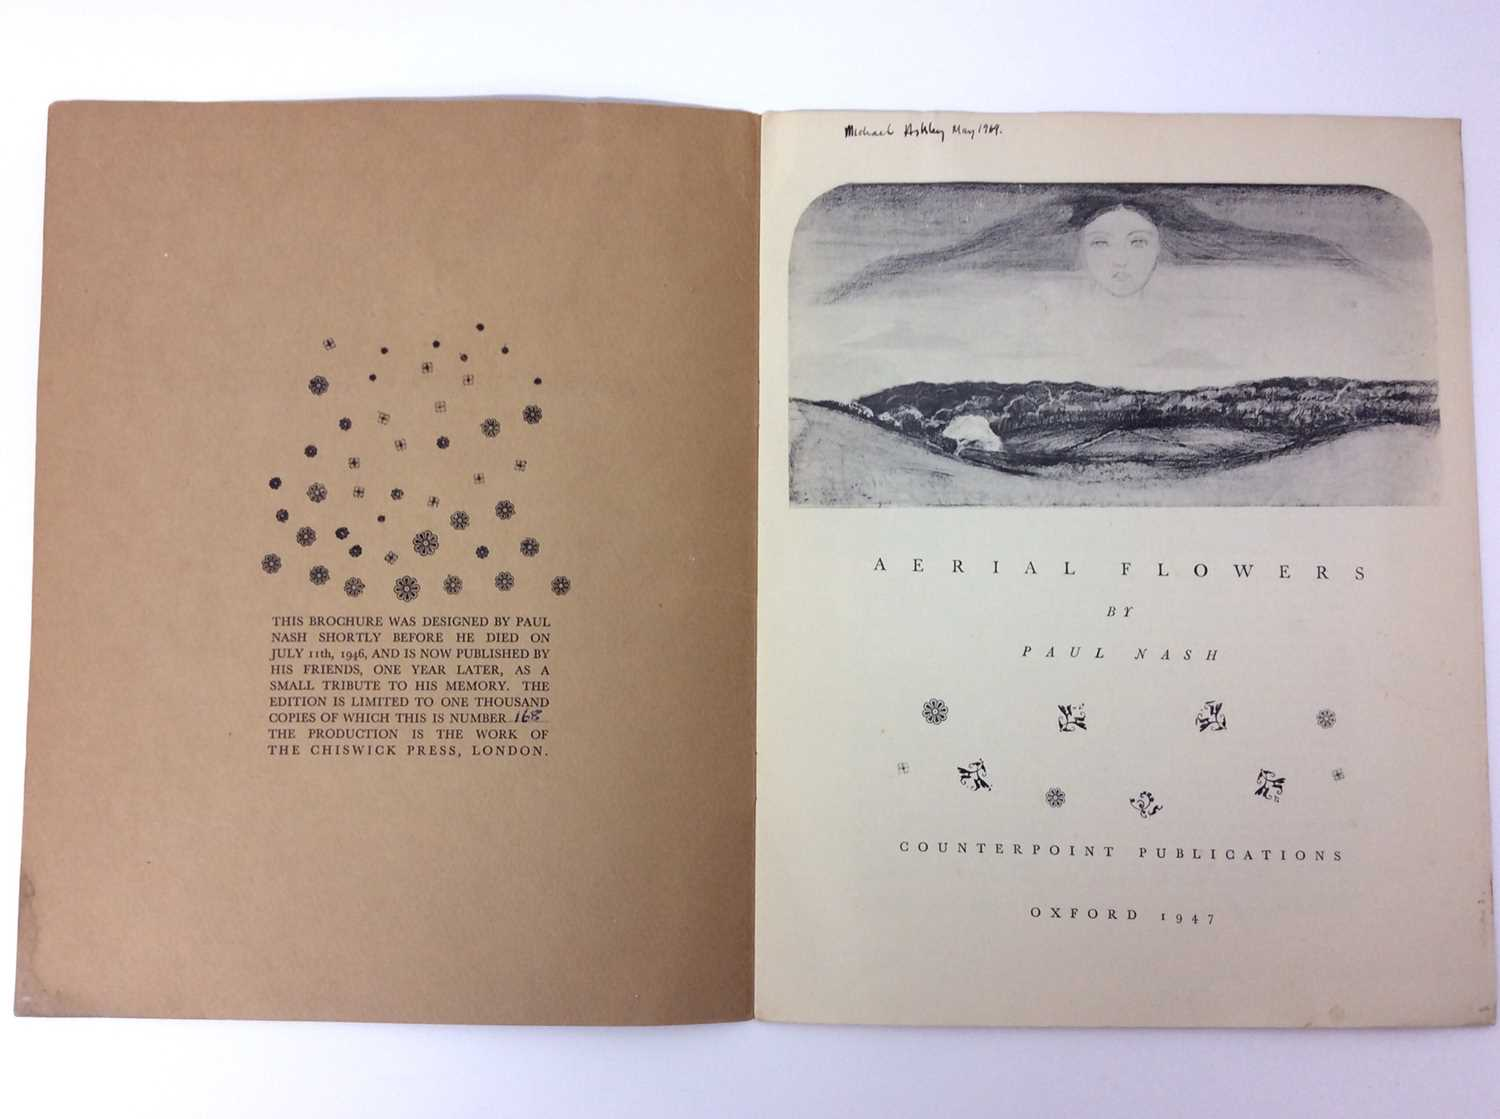 Paul Nash, Monster Field, limited to an edition of 1000, together with Aerial Flowers - Image 7 of 11